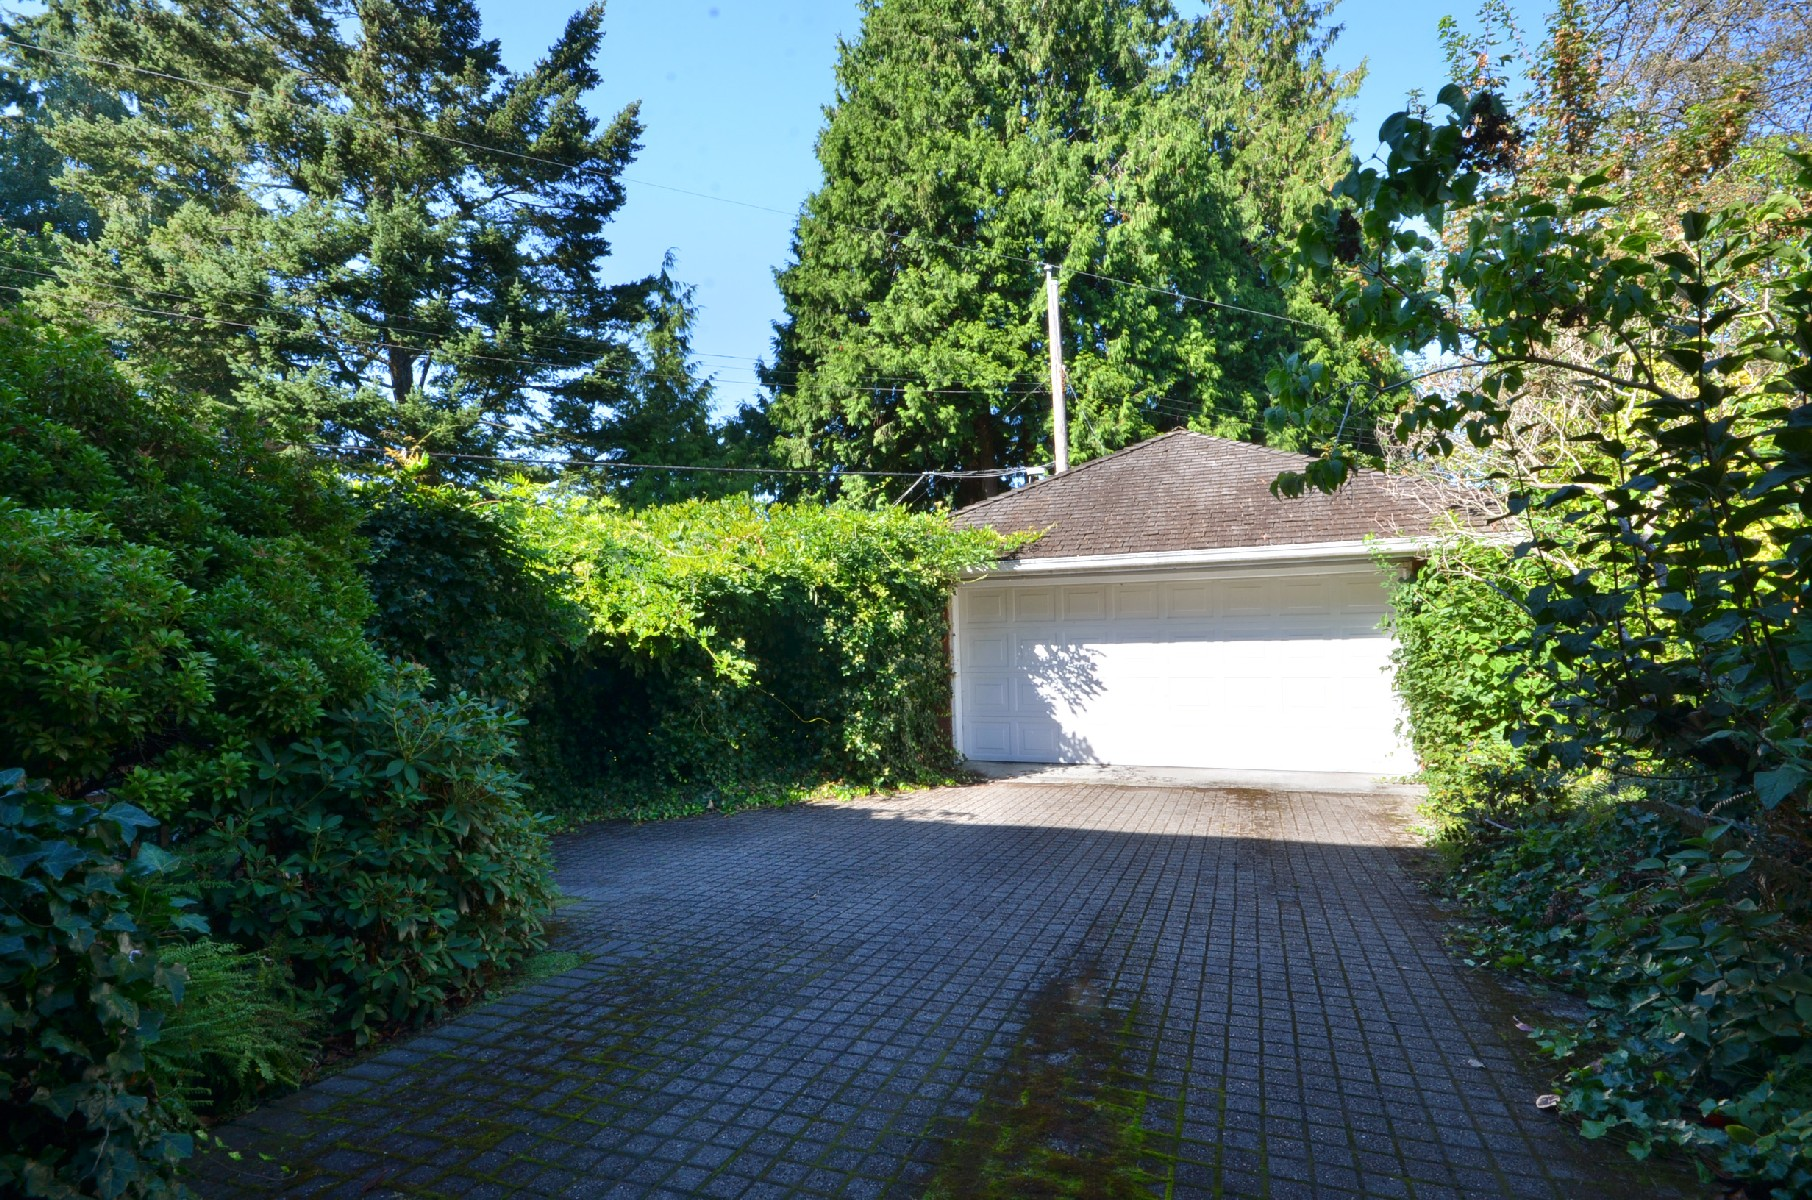 Double car garage - Shaughnessy - 1777 West 38th Avenue, Vancouver, BC, Canada